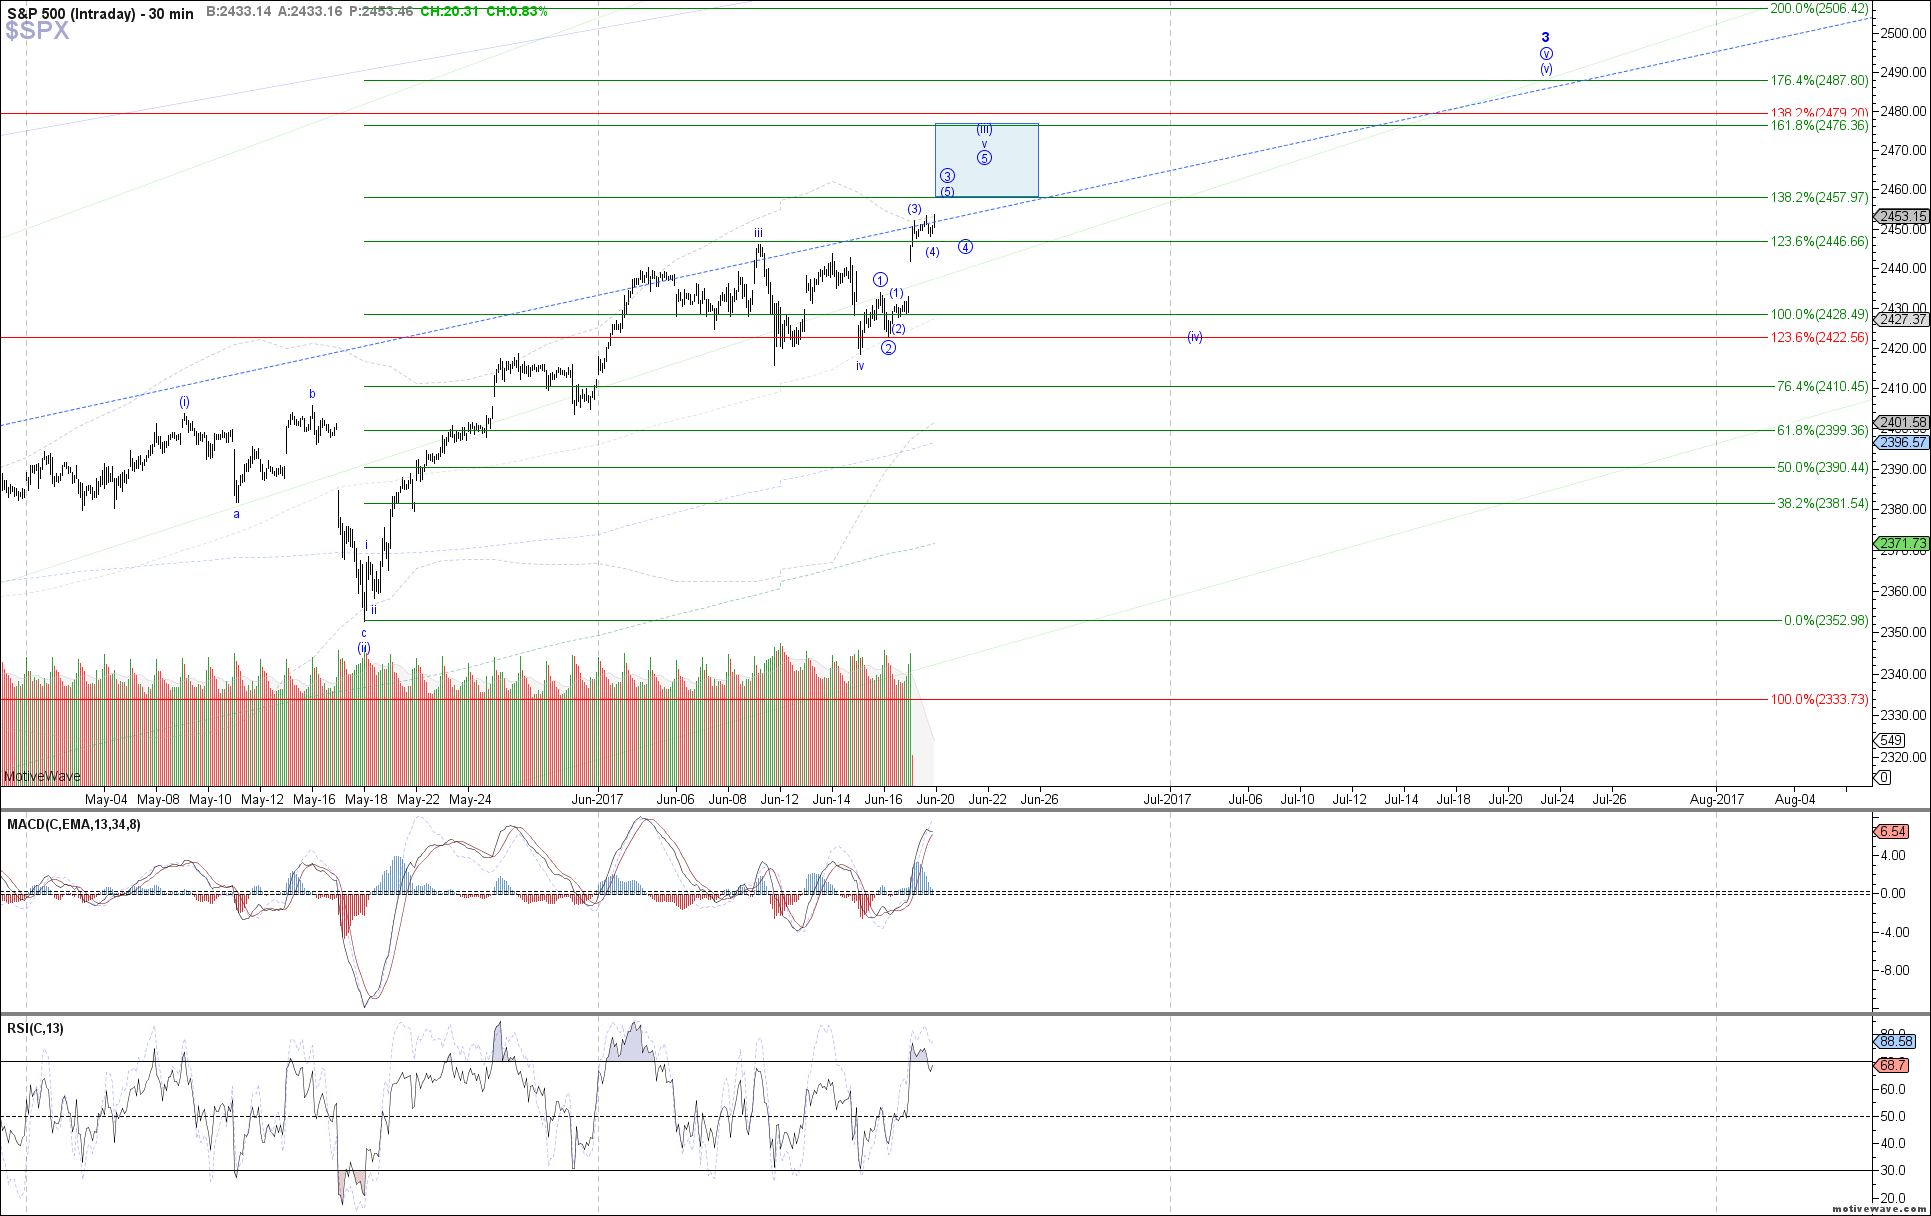 $SPX - Intraday - Jun-19 1307 PM (30 min)